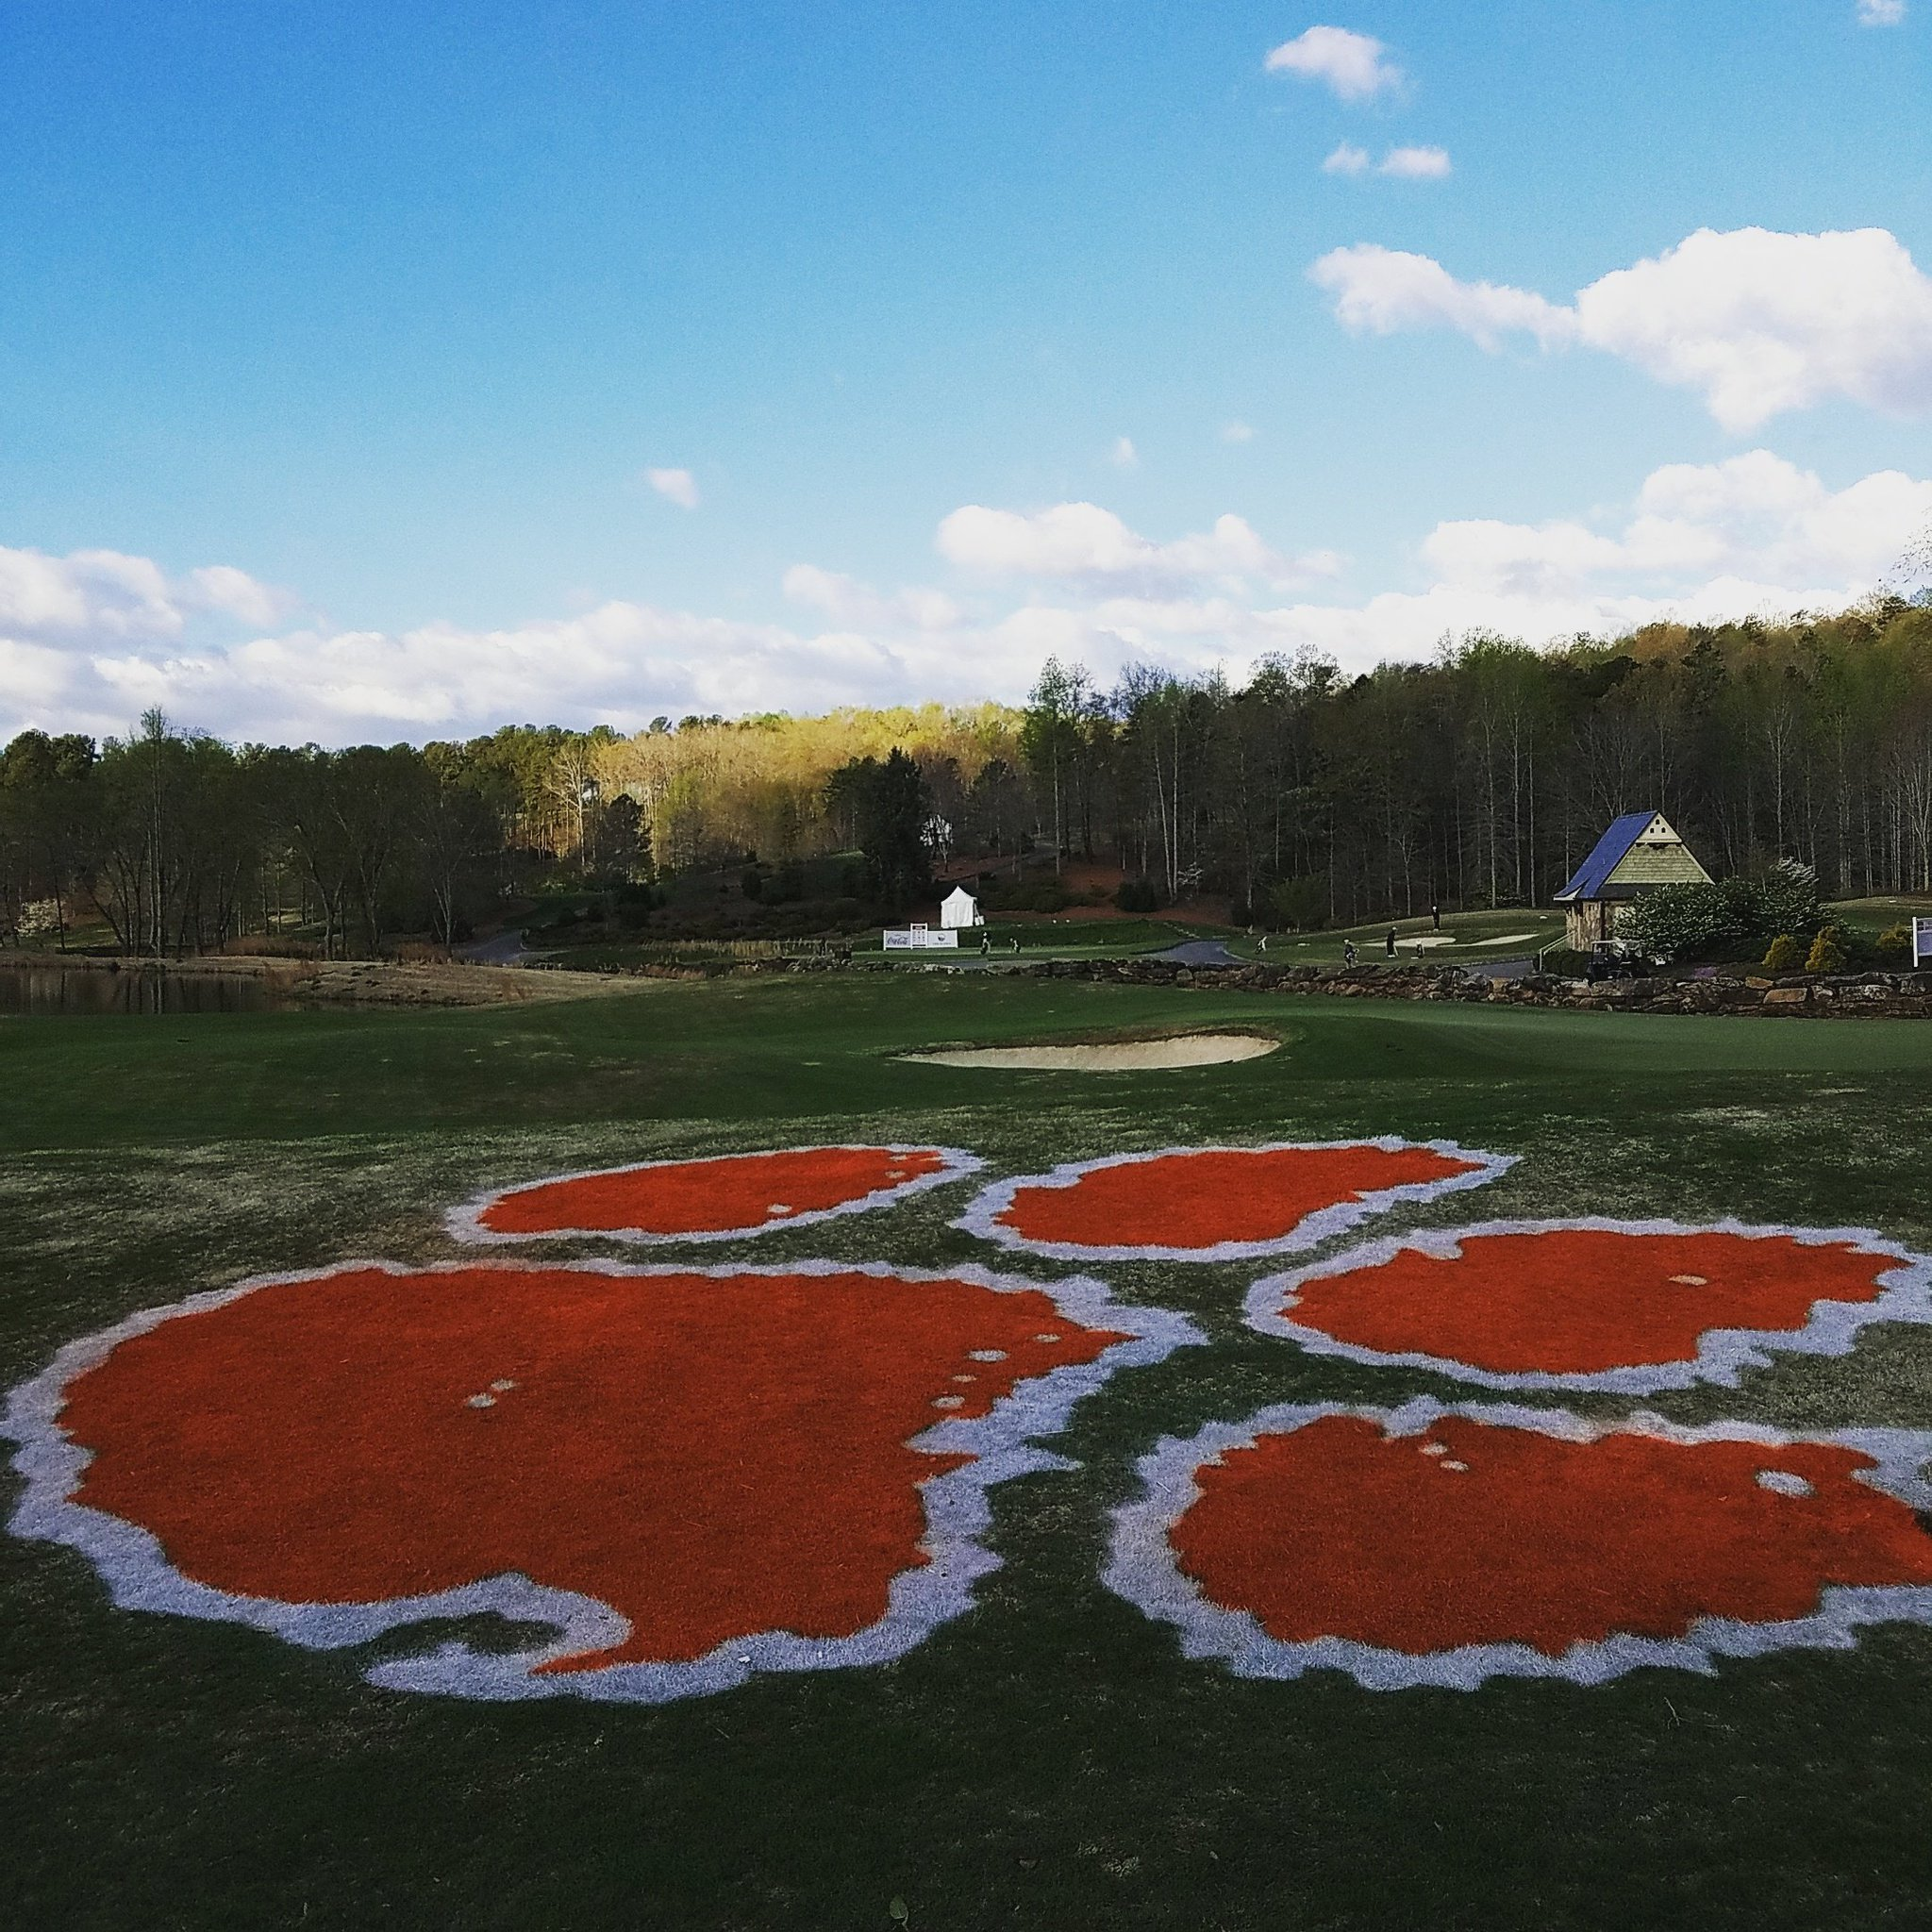 It's a beautiful morning and the #ClemsonInvitational starts in 10 minutes @CliffsLiving! Live stats: https://t.co/Naff6ekwtK https://t.co/teaV7liGXp